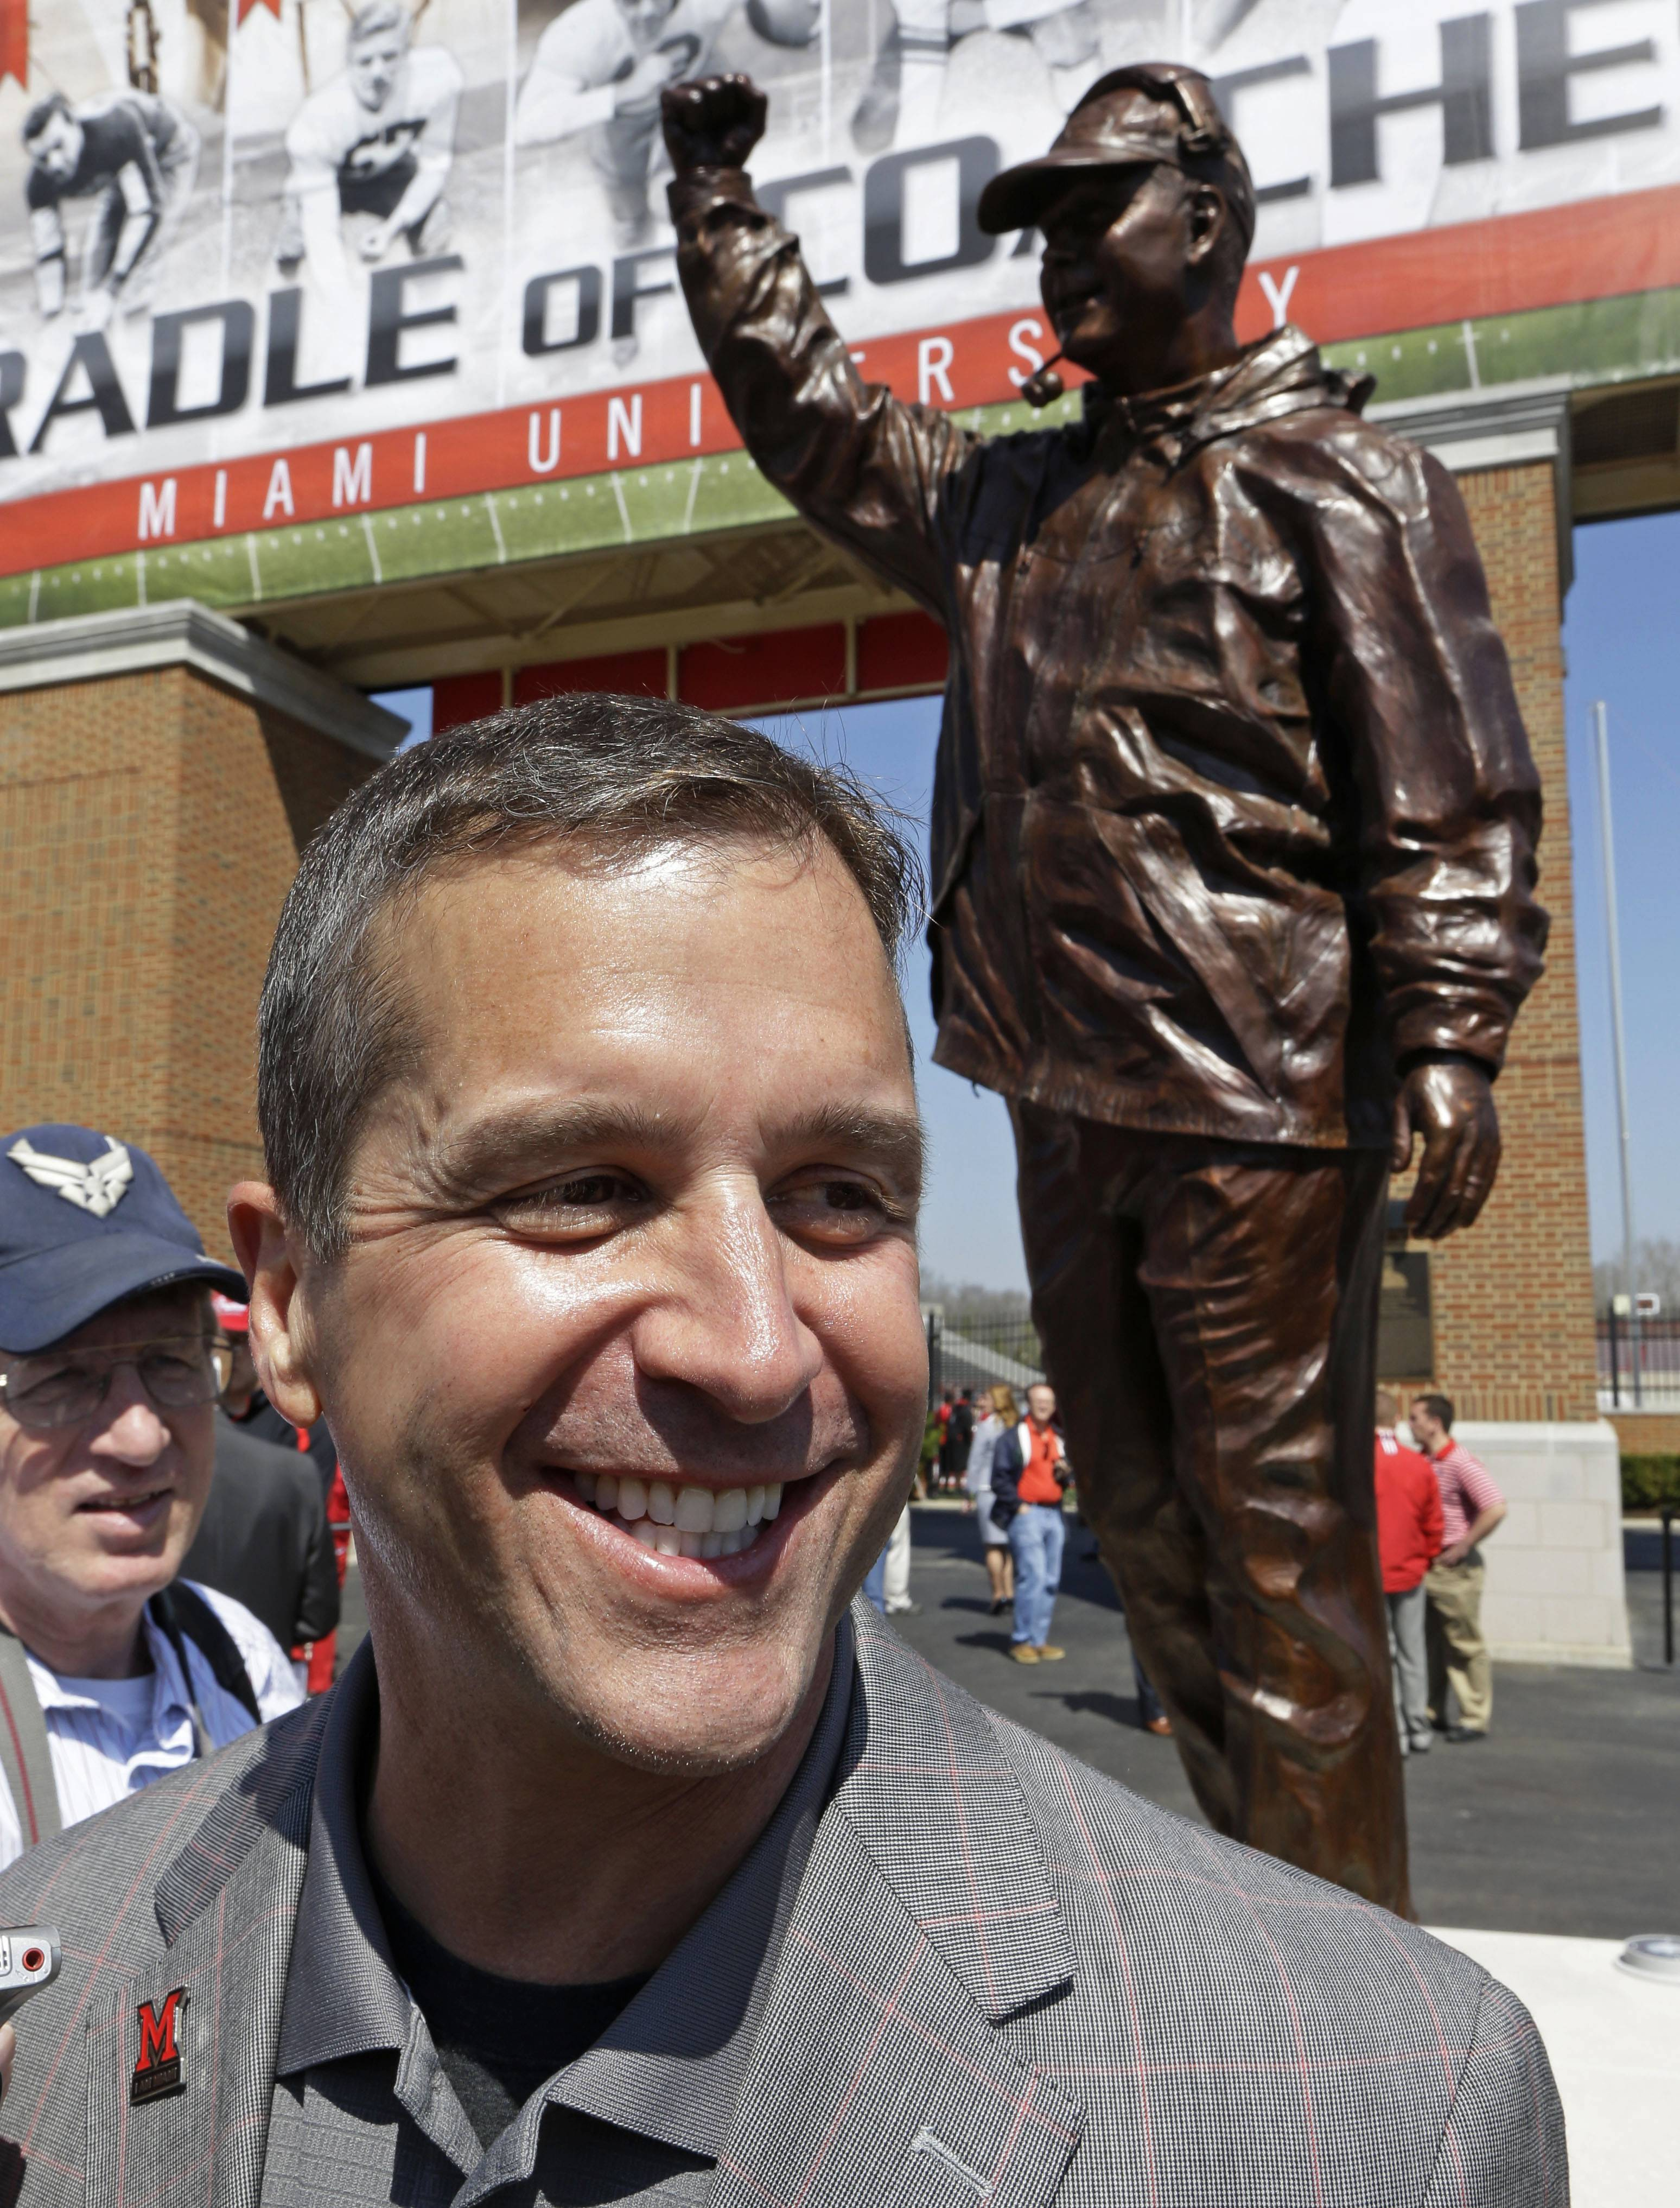 Baltimore Ravens coach John Harbaugh smiles next to a statue of him that was unveiled Saturday at Miami (Ohio) University in Oxford, Ohio, where Harbaugh was inducted into the school's Cradle of Coaches.